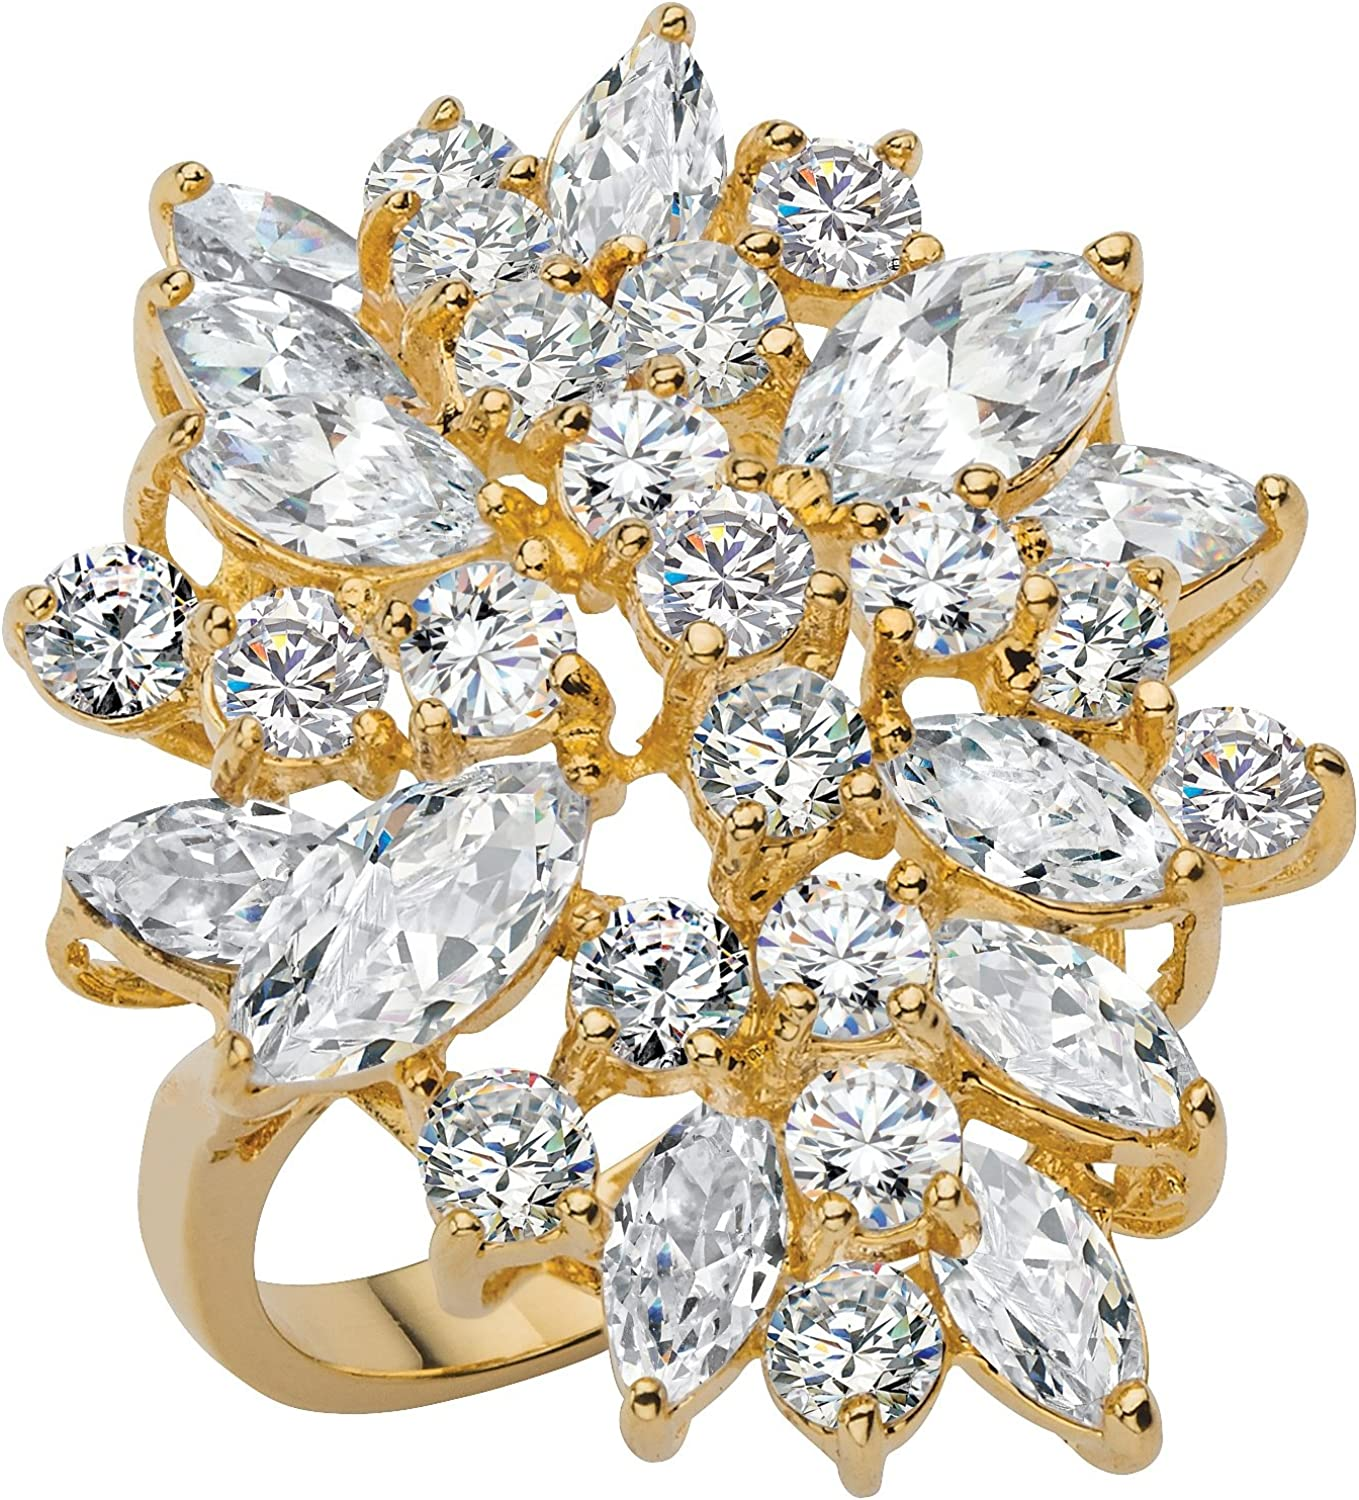 Palm Beach Jewelry 18K Yellow Gold Plated Marquise Cut and Round Cubic Zirconia Cluster Cocktail Ring